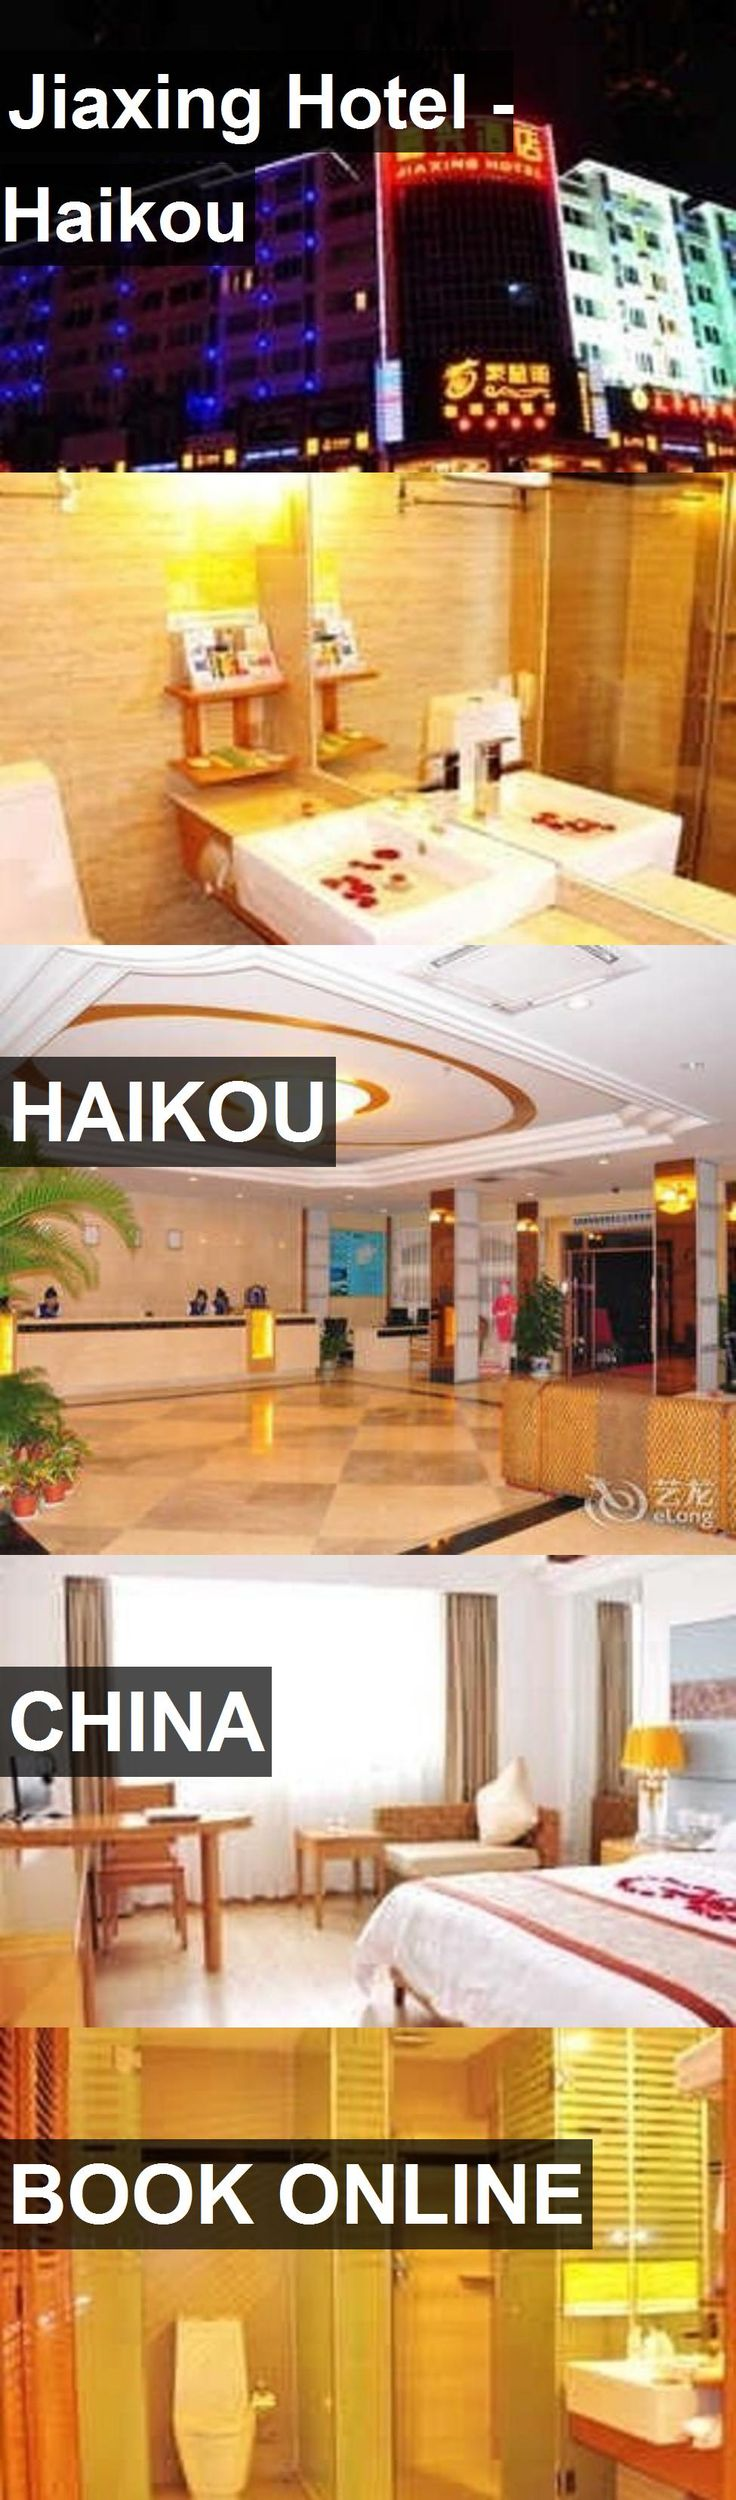 Hotel Jiaxing Hotel - Haikou in Haikou, China. For more information, photos, reviews and best prices please follow the link. #China #Haikou #JiaxingHotel-Haikou #hotel #travel #vacation